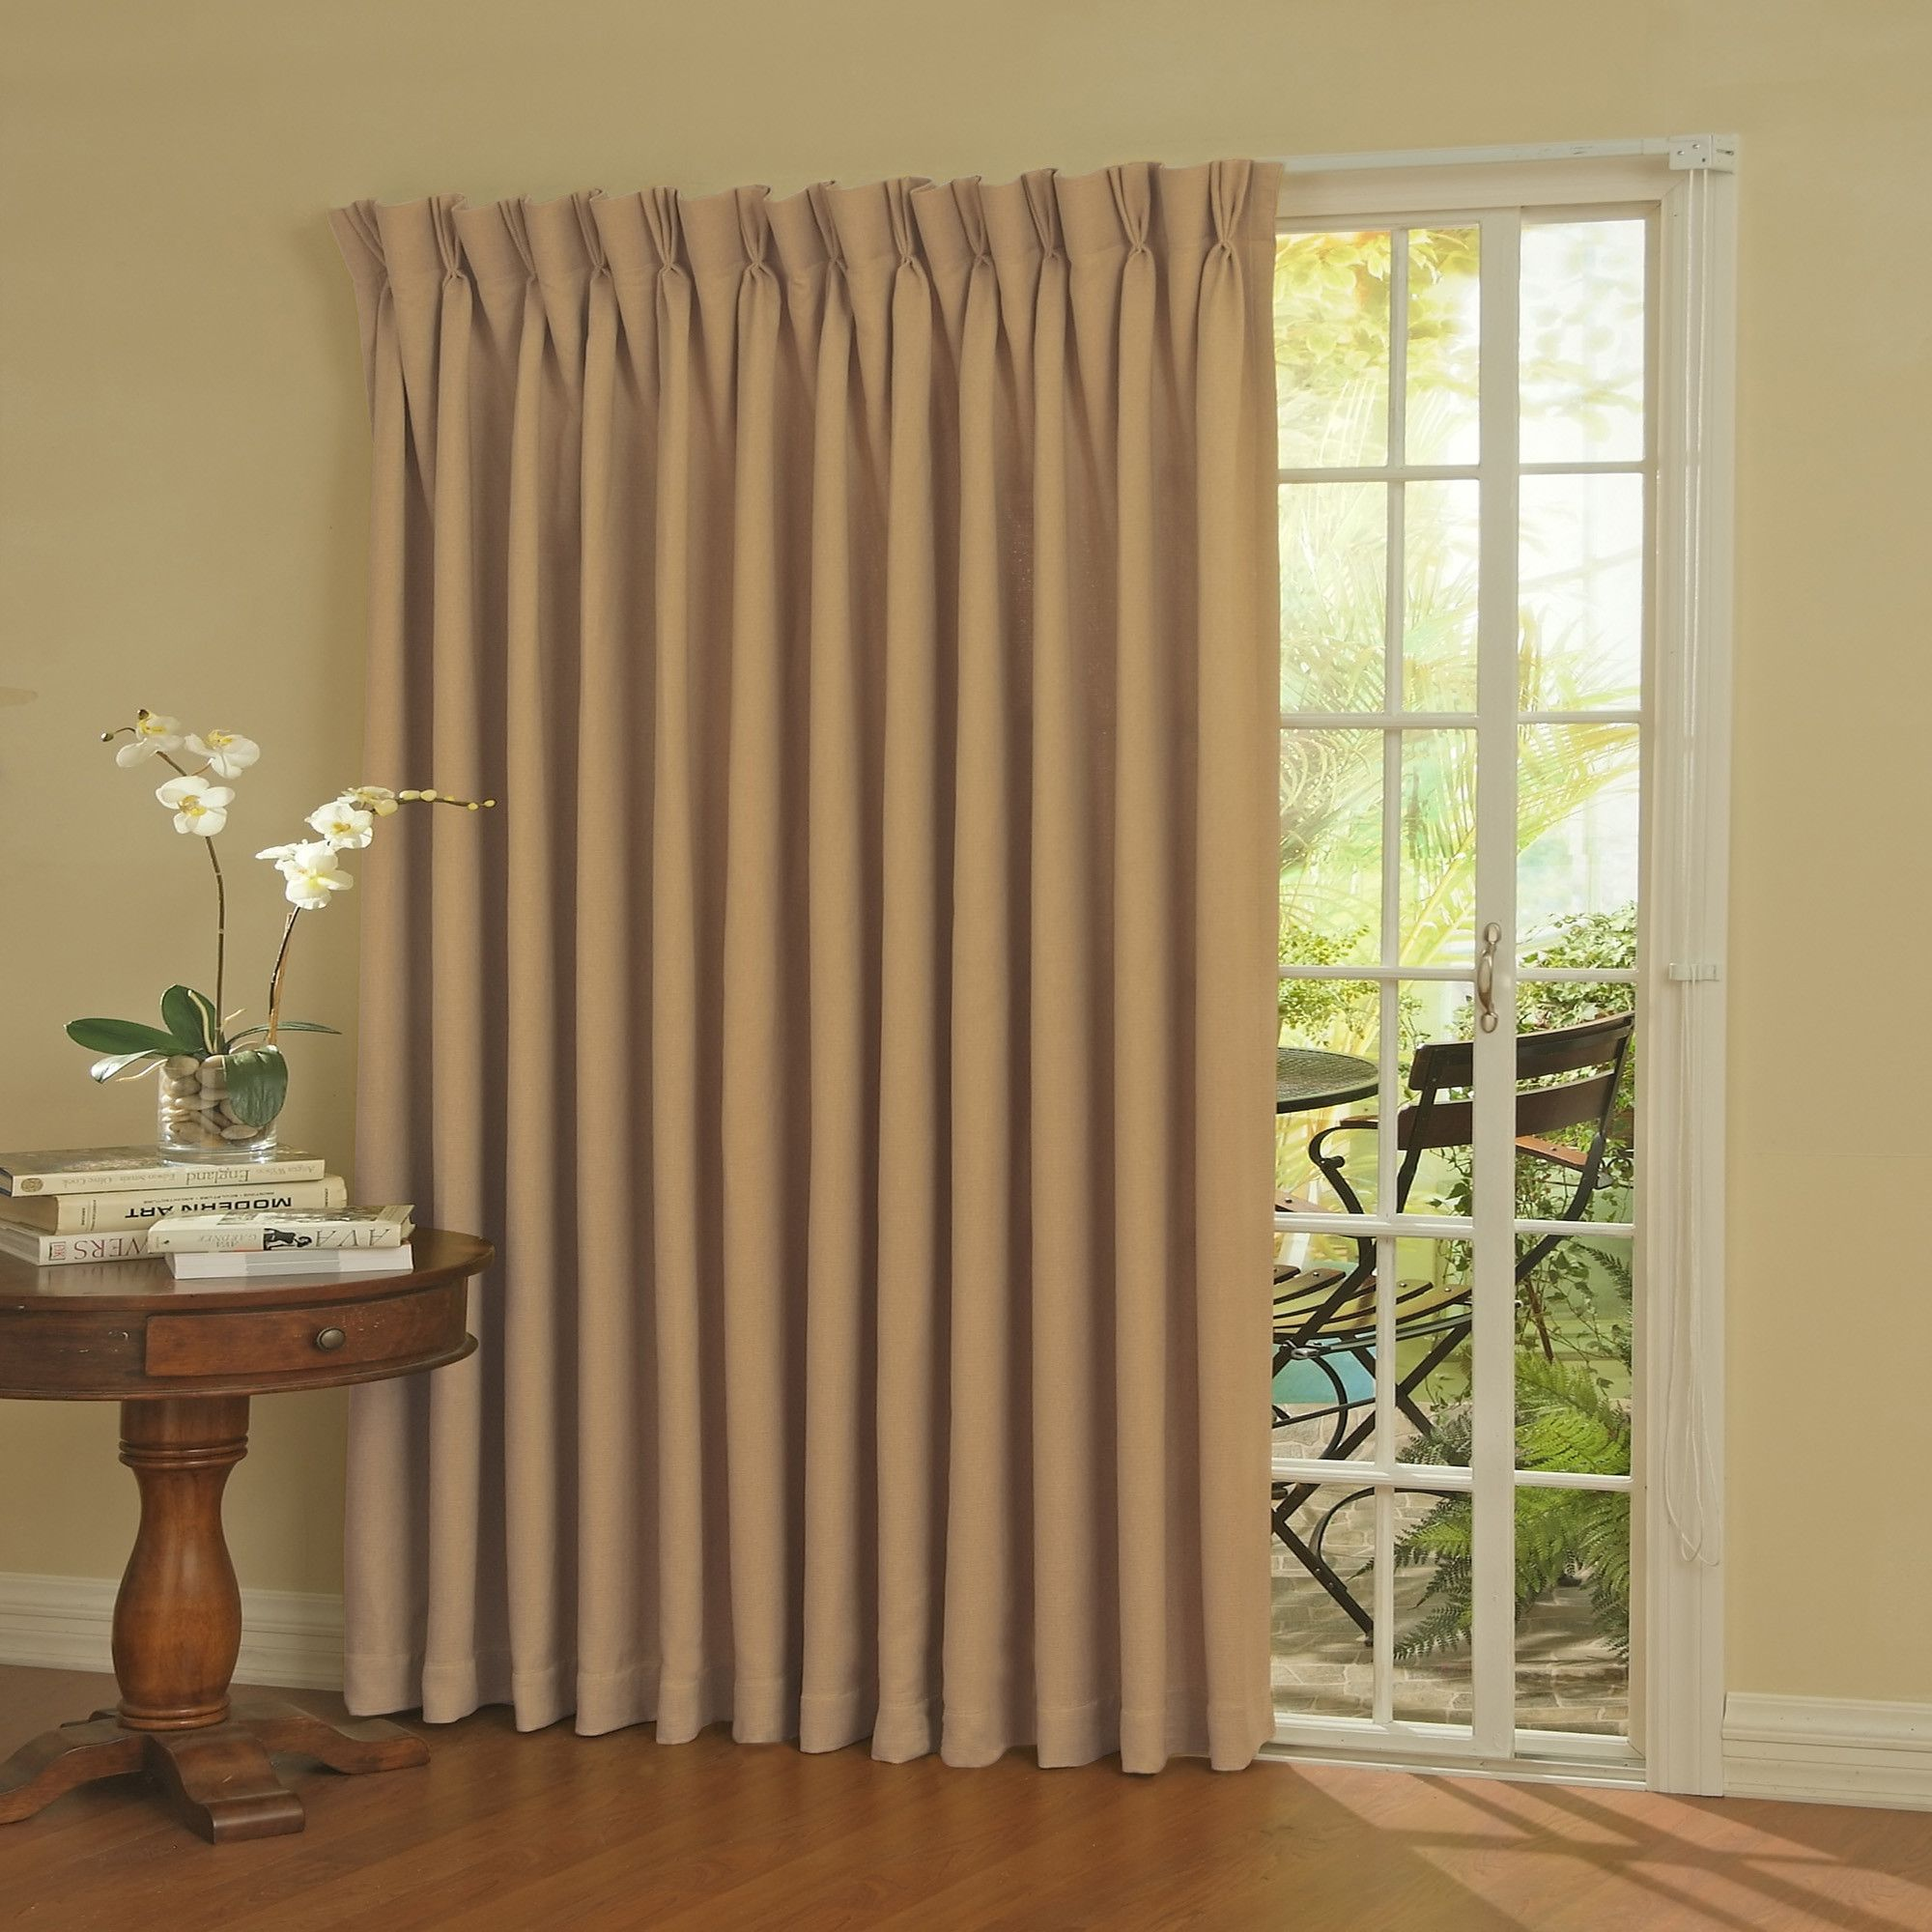 Bailey Solid Blackout Thermal Pinch Pleat Single Curtain Panel